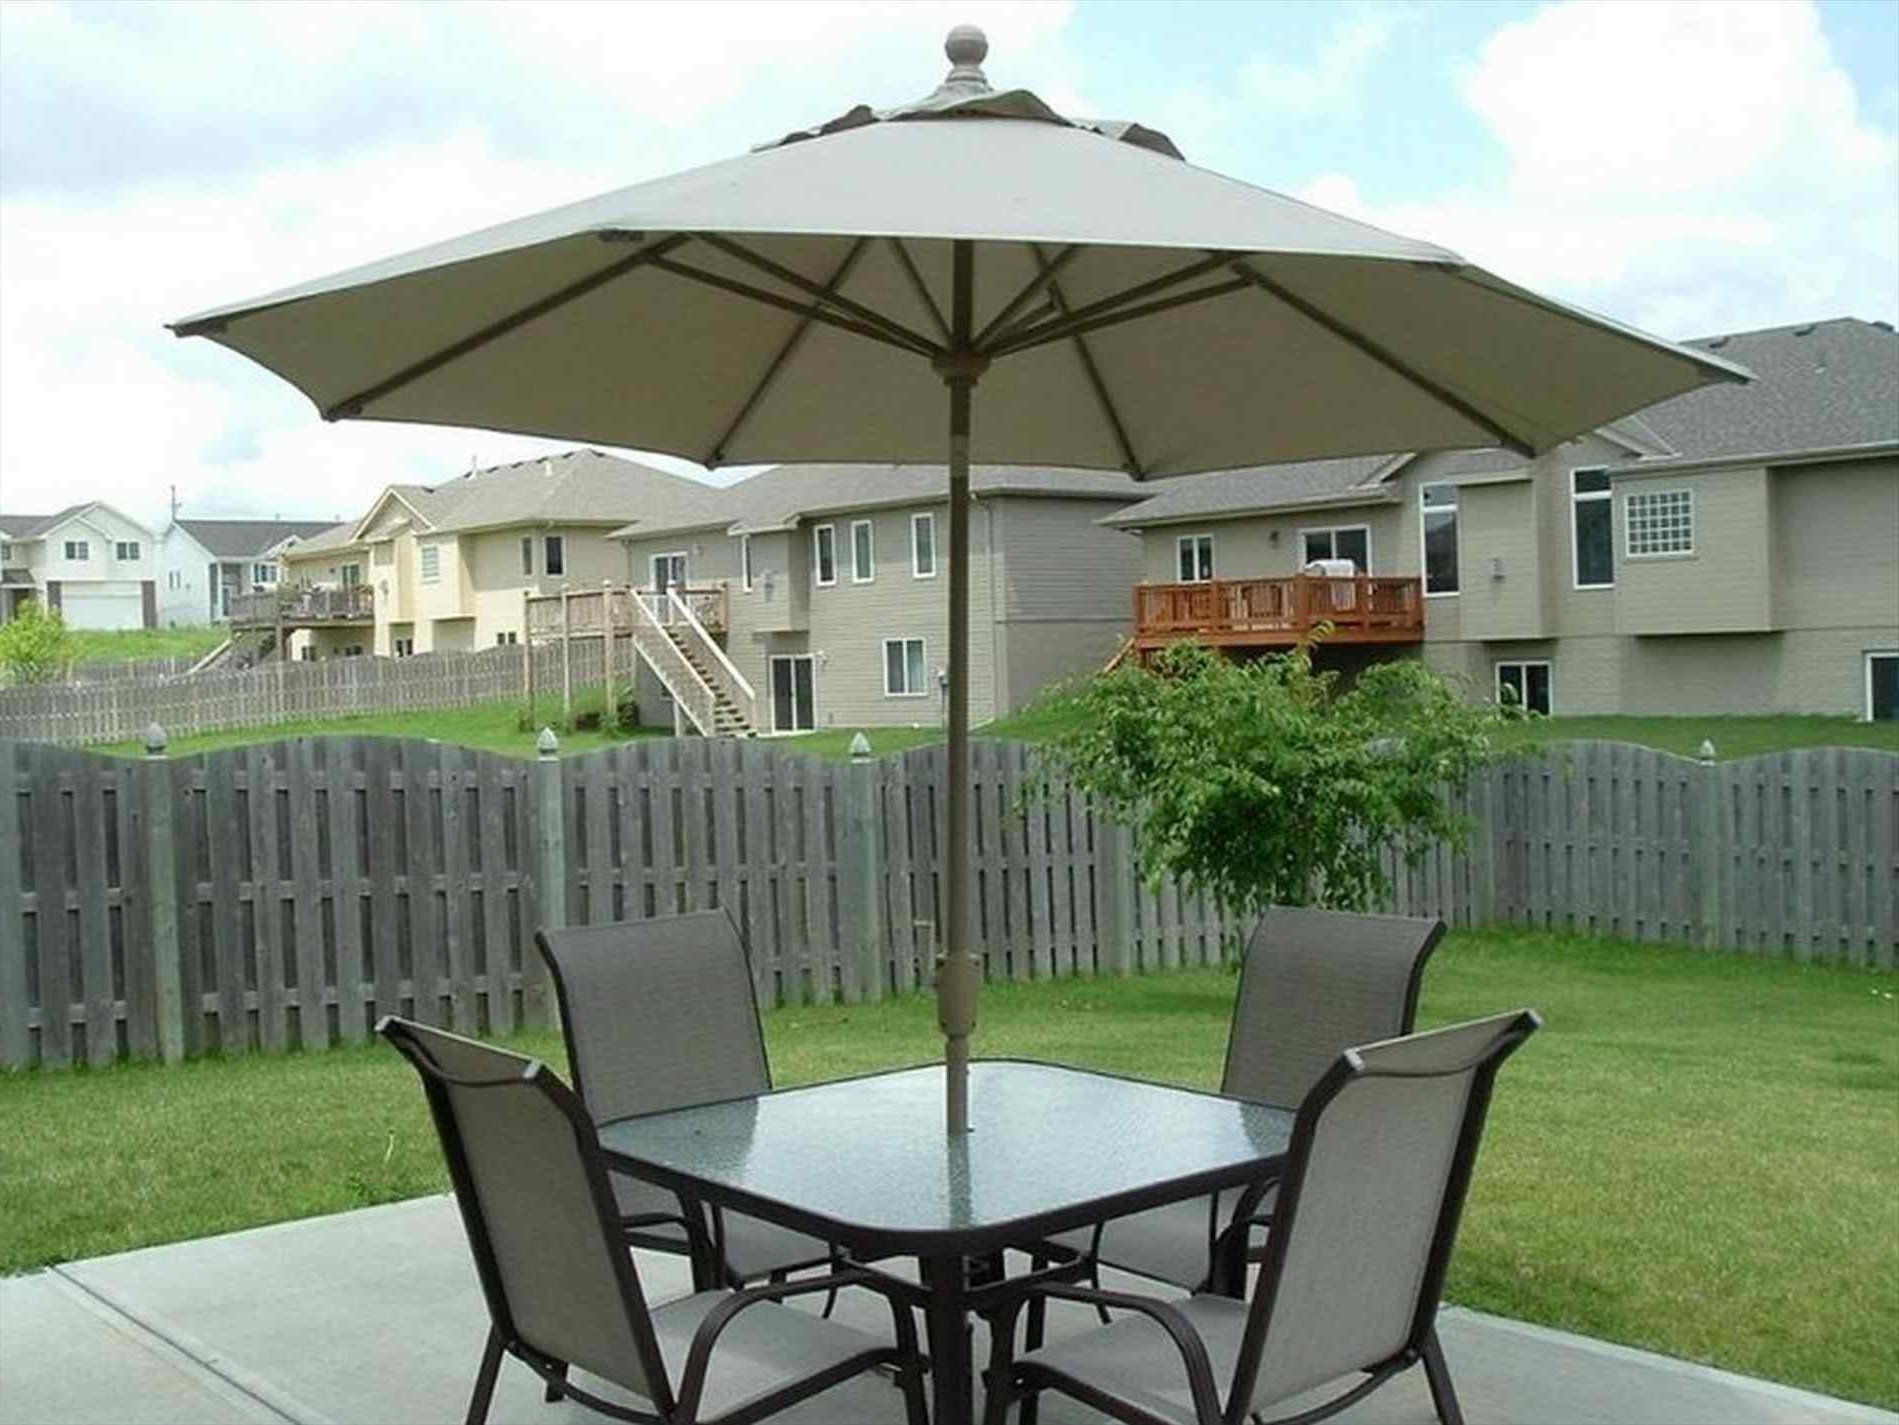 Most Recently Released Patio Tables With Umbrellas With The Images Collection Of Furniture With Umbrella Garden Umbrella (View 16 of 20)